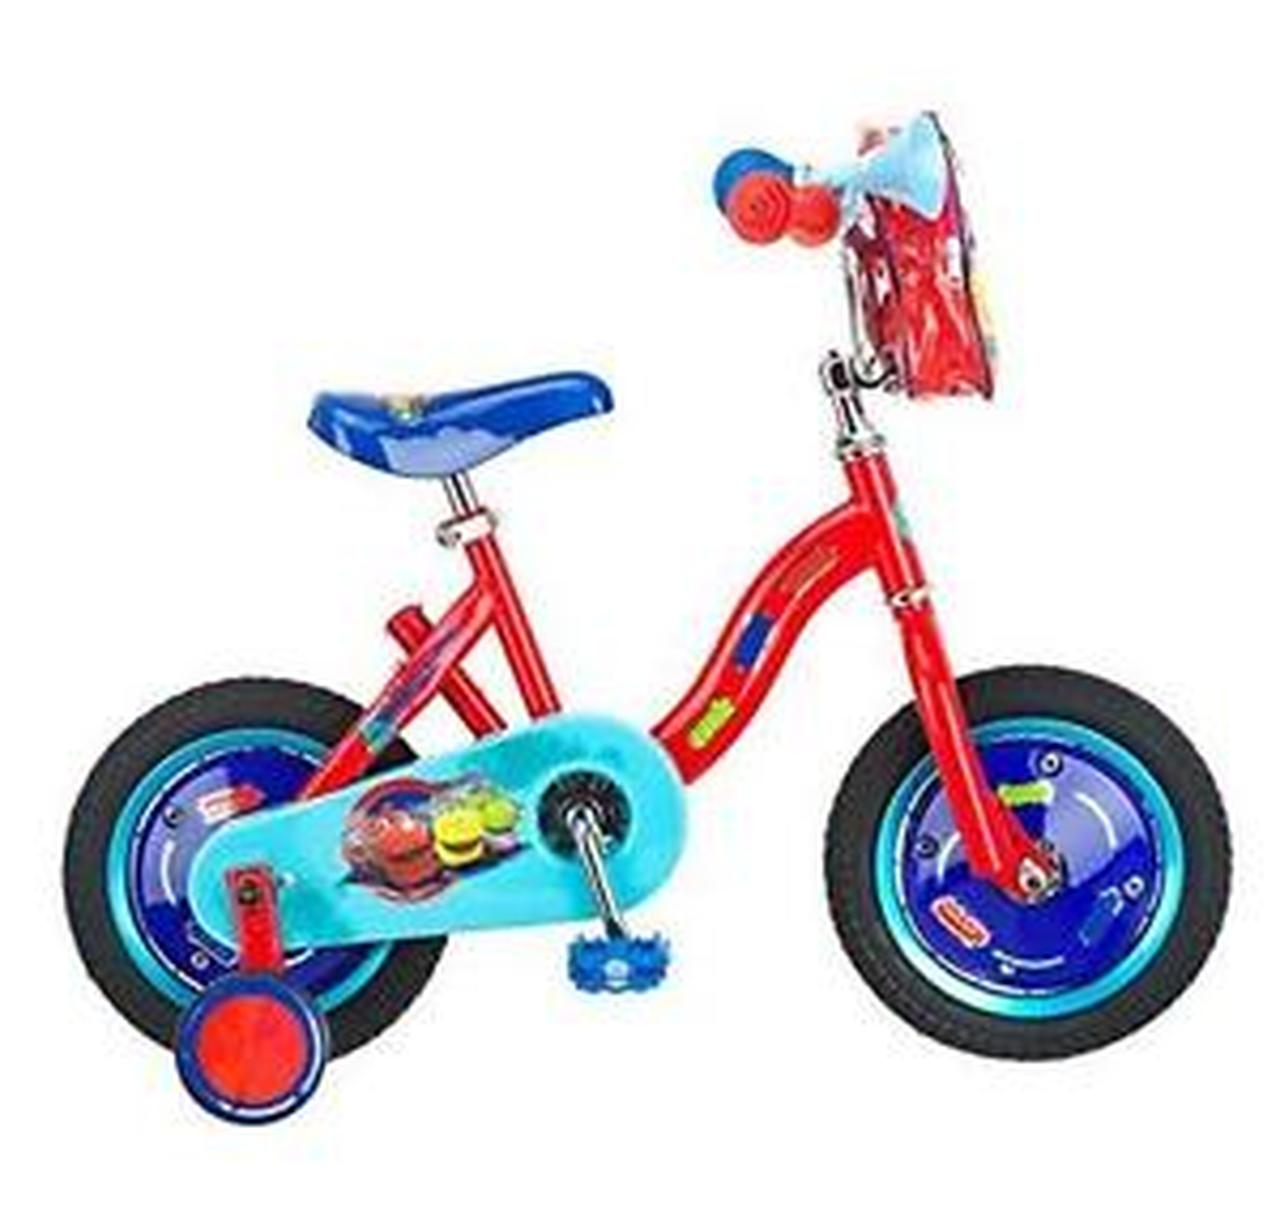 Chuggington Bicycle, Red, 10-Inch